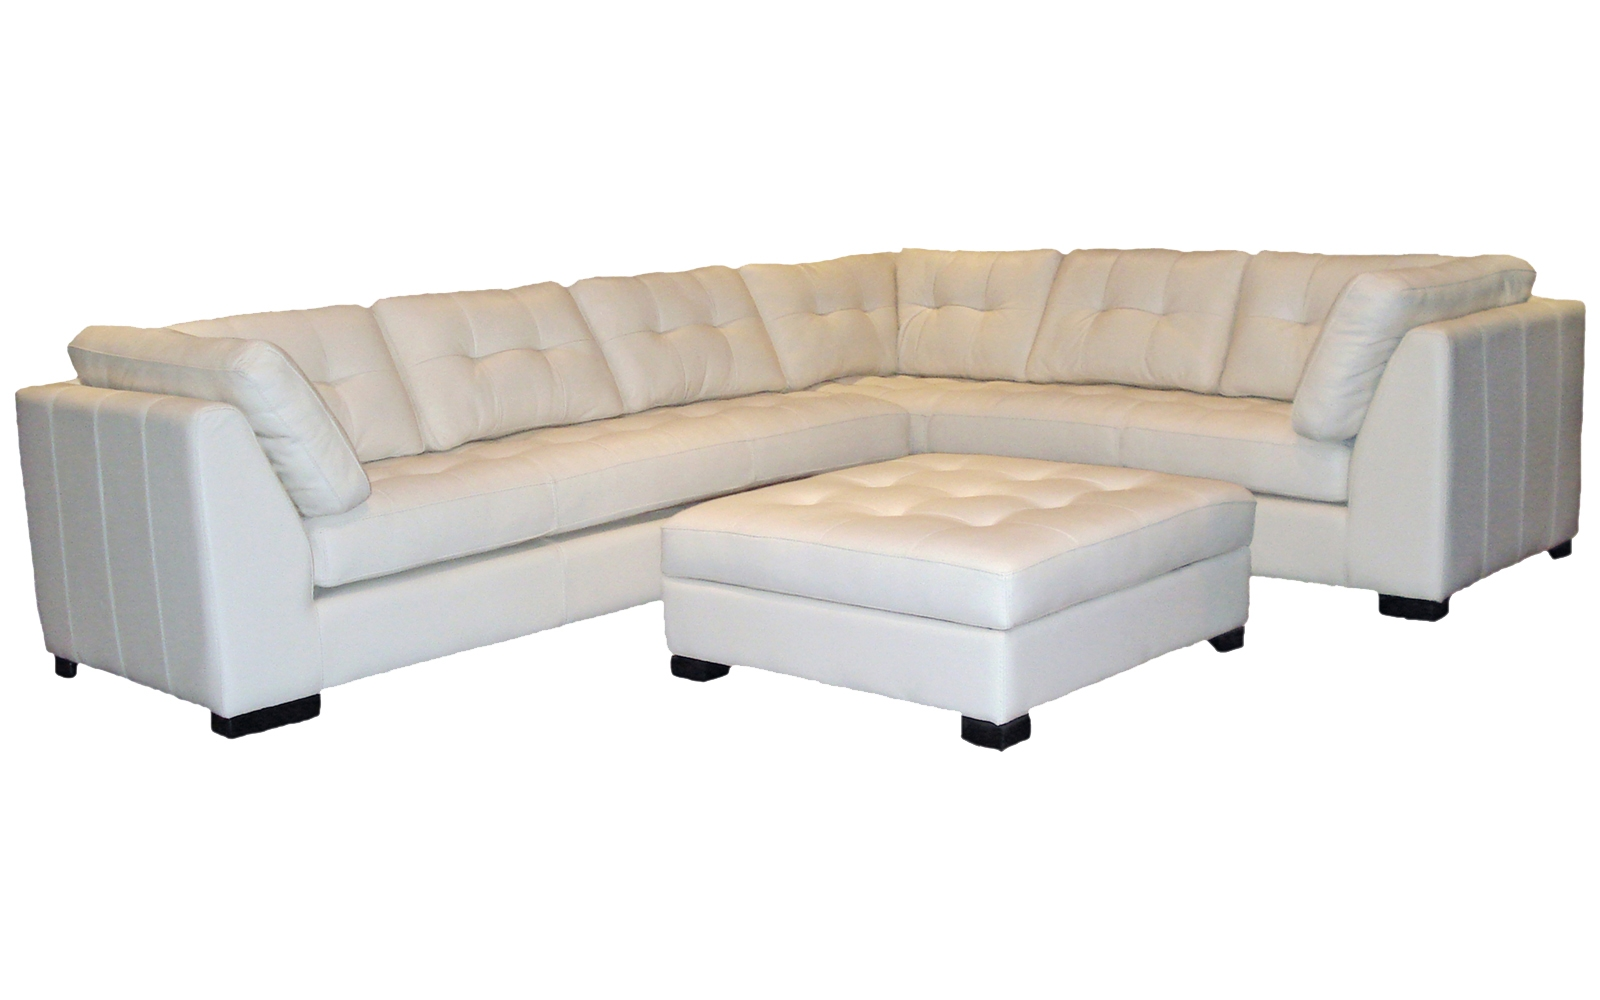 Newport Sofa Available Omnia Leather Inside Newport Sofas (Image 9 of 15)